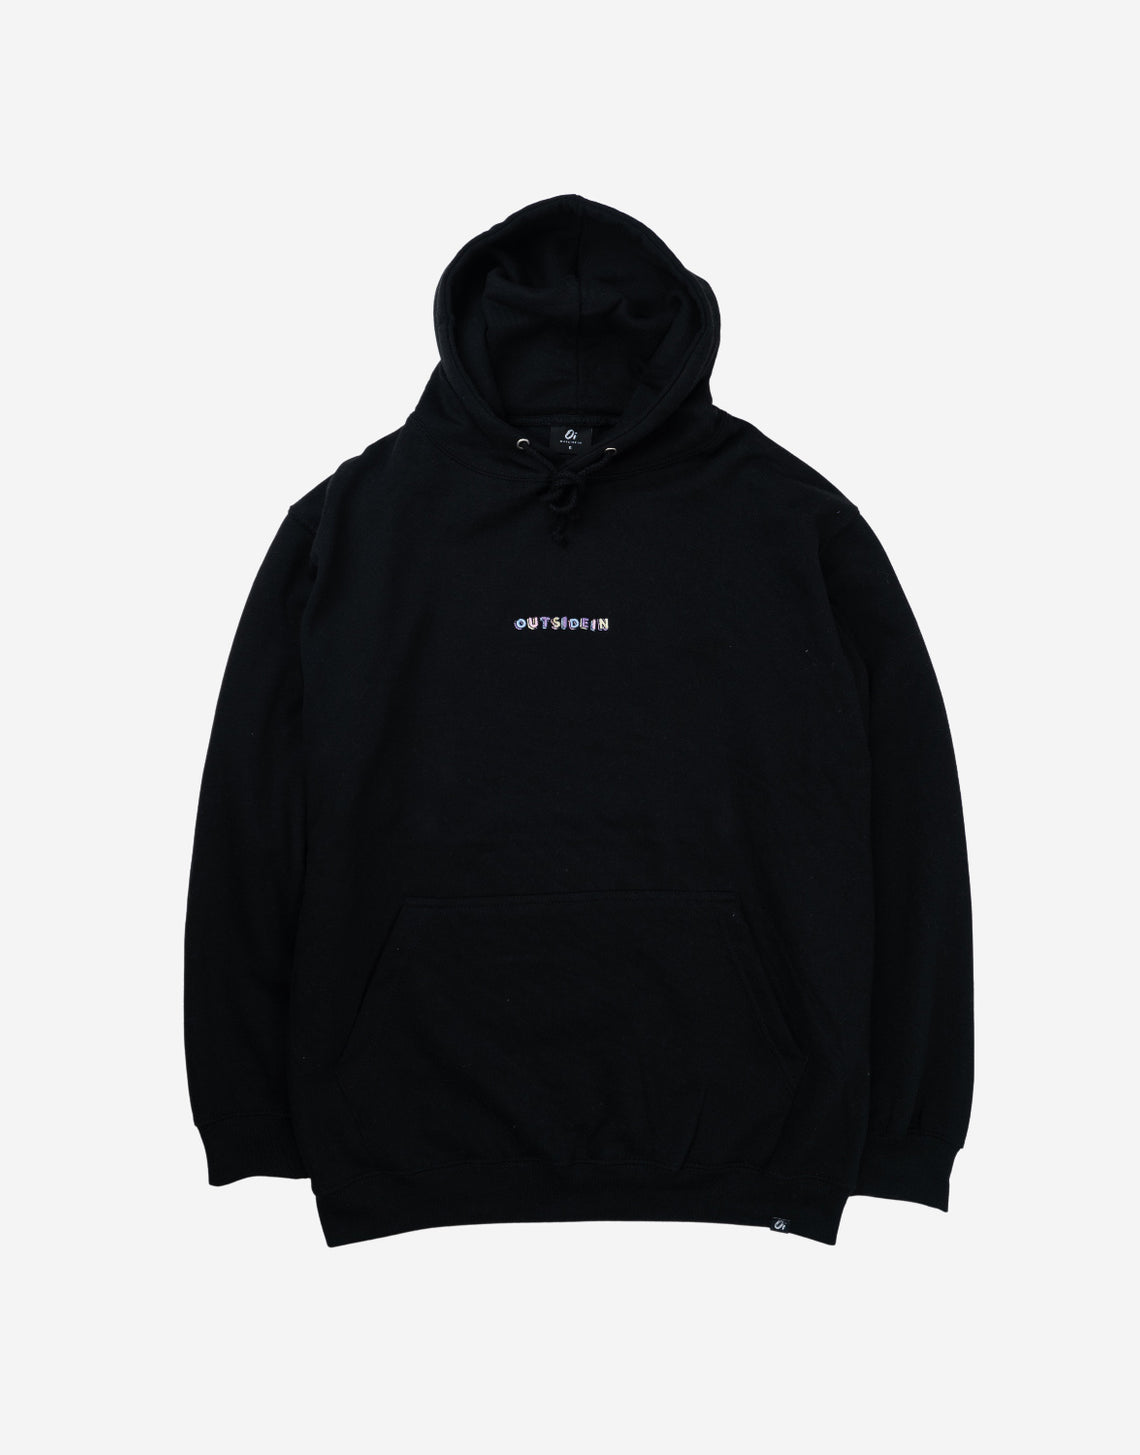 Black Building Blocks Hoodie - OutsideIn